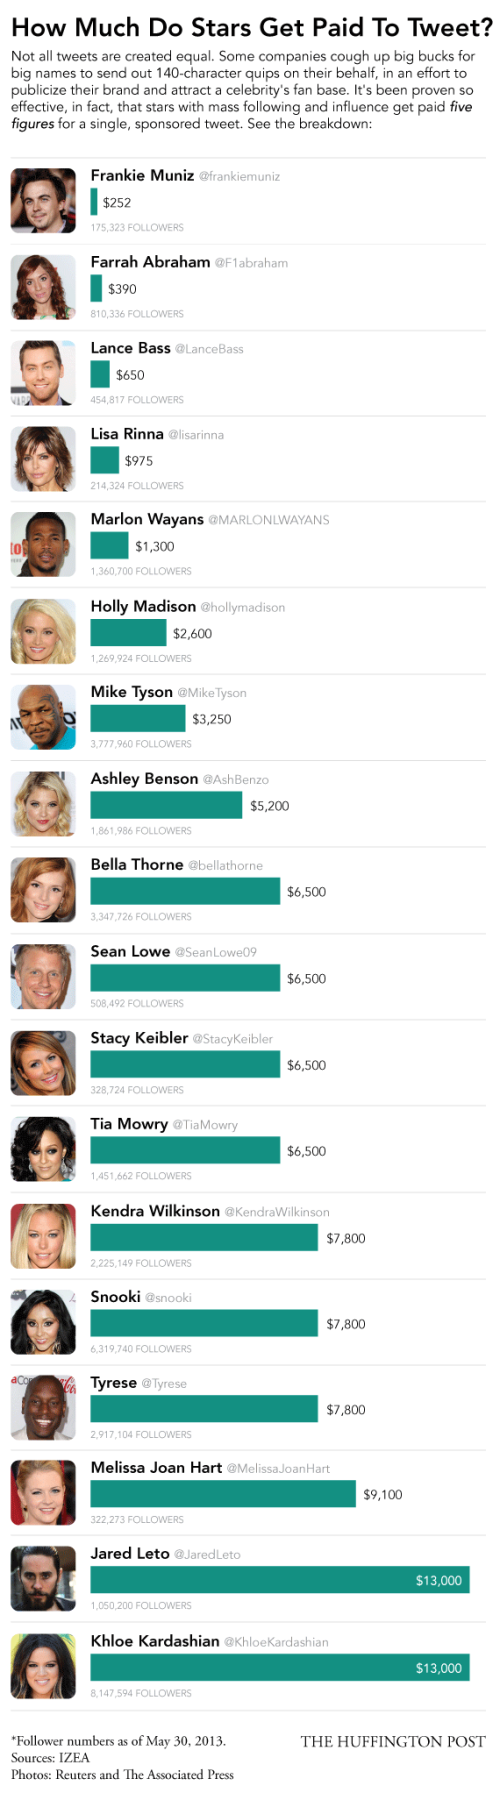 how-much-18-different-celebrities-get-paid-to-tweethow-much-18-different-celebrities-get-paid-to-tweet-infographic_51af86056a095